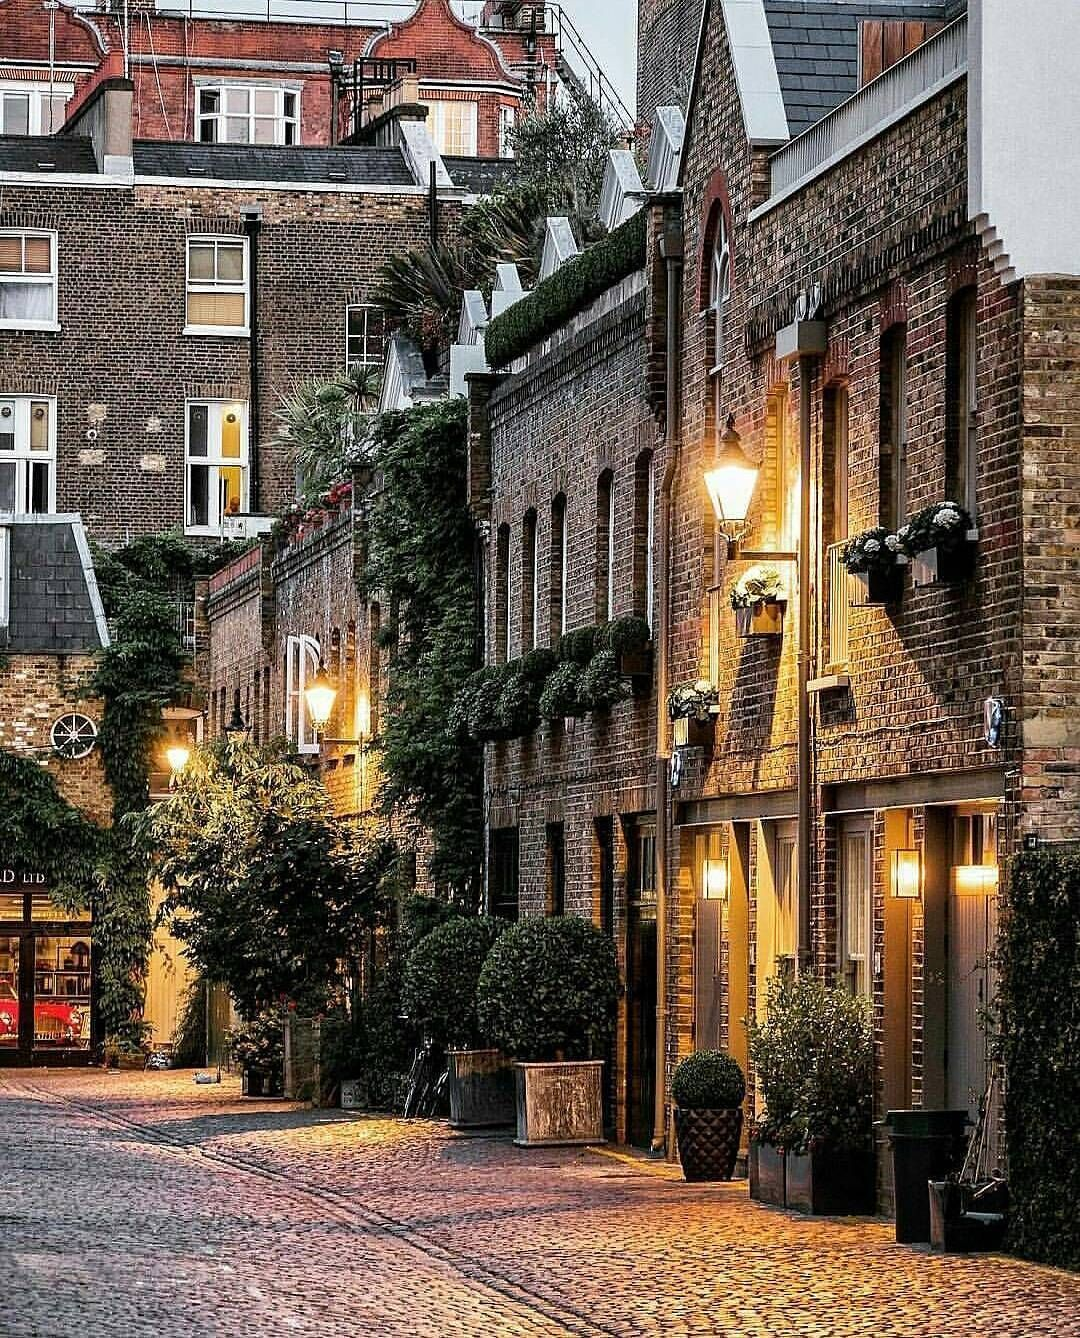 Did you already visit London? No? So this is the perfect time